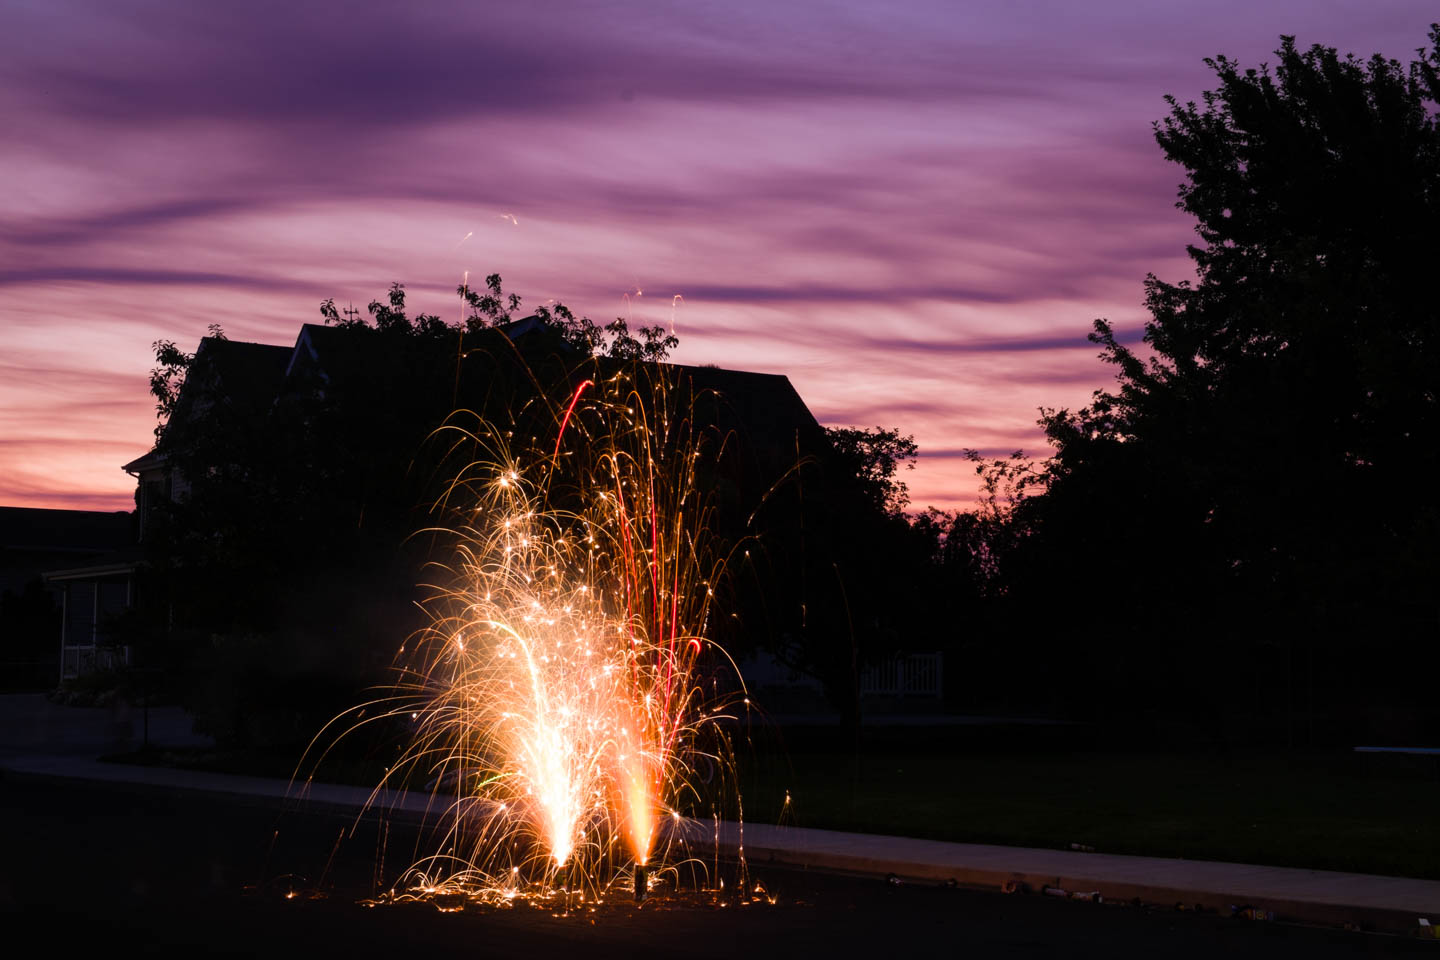 Fireworks during sunset